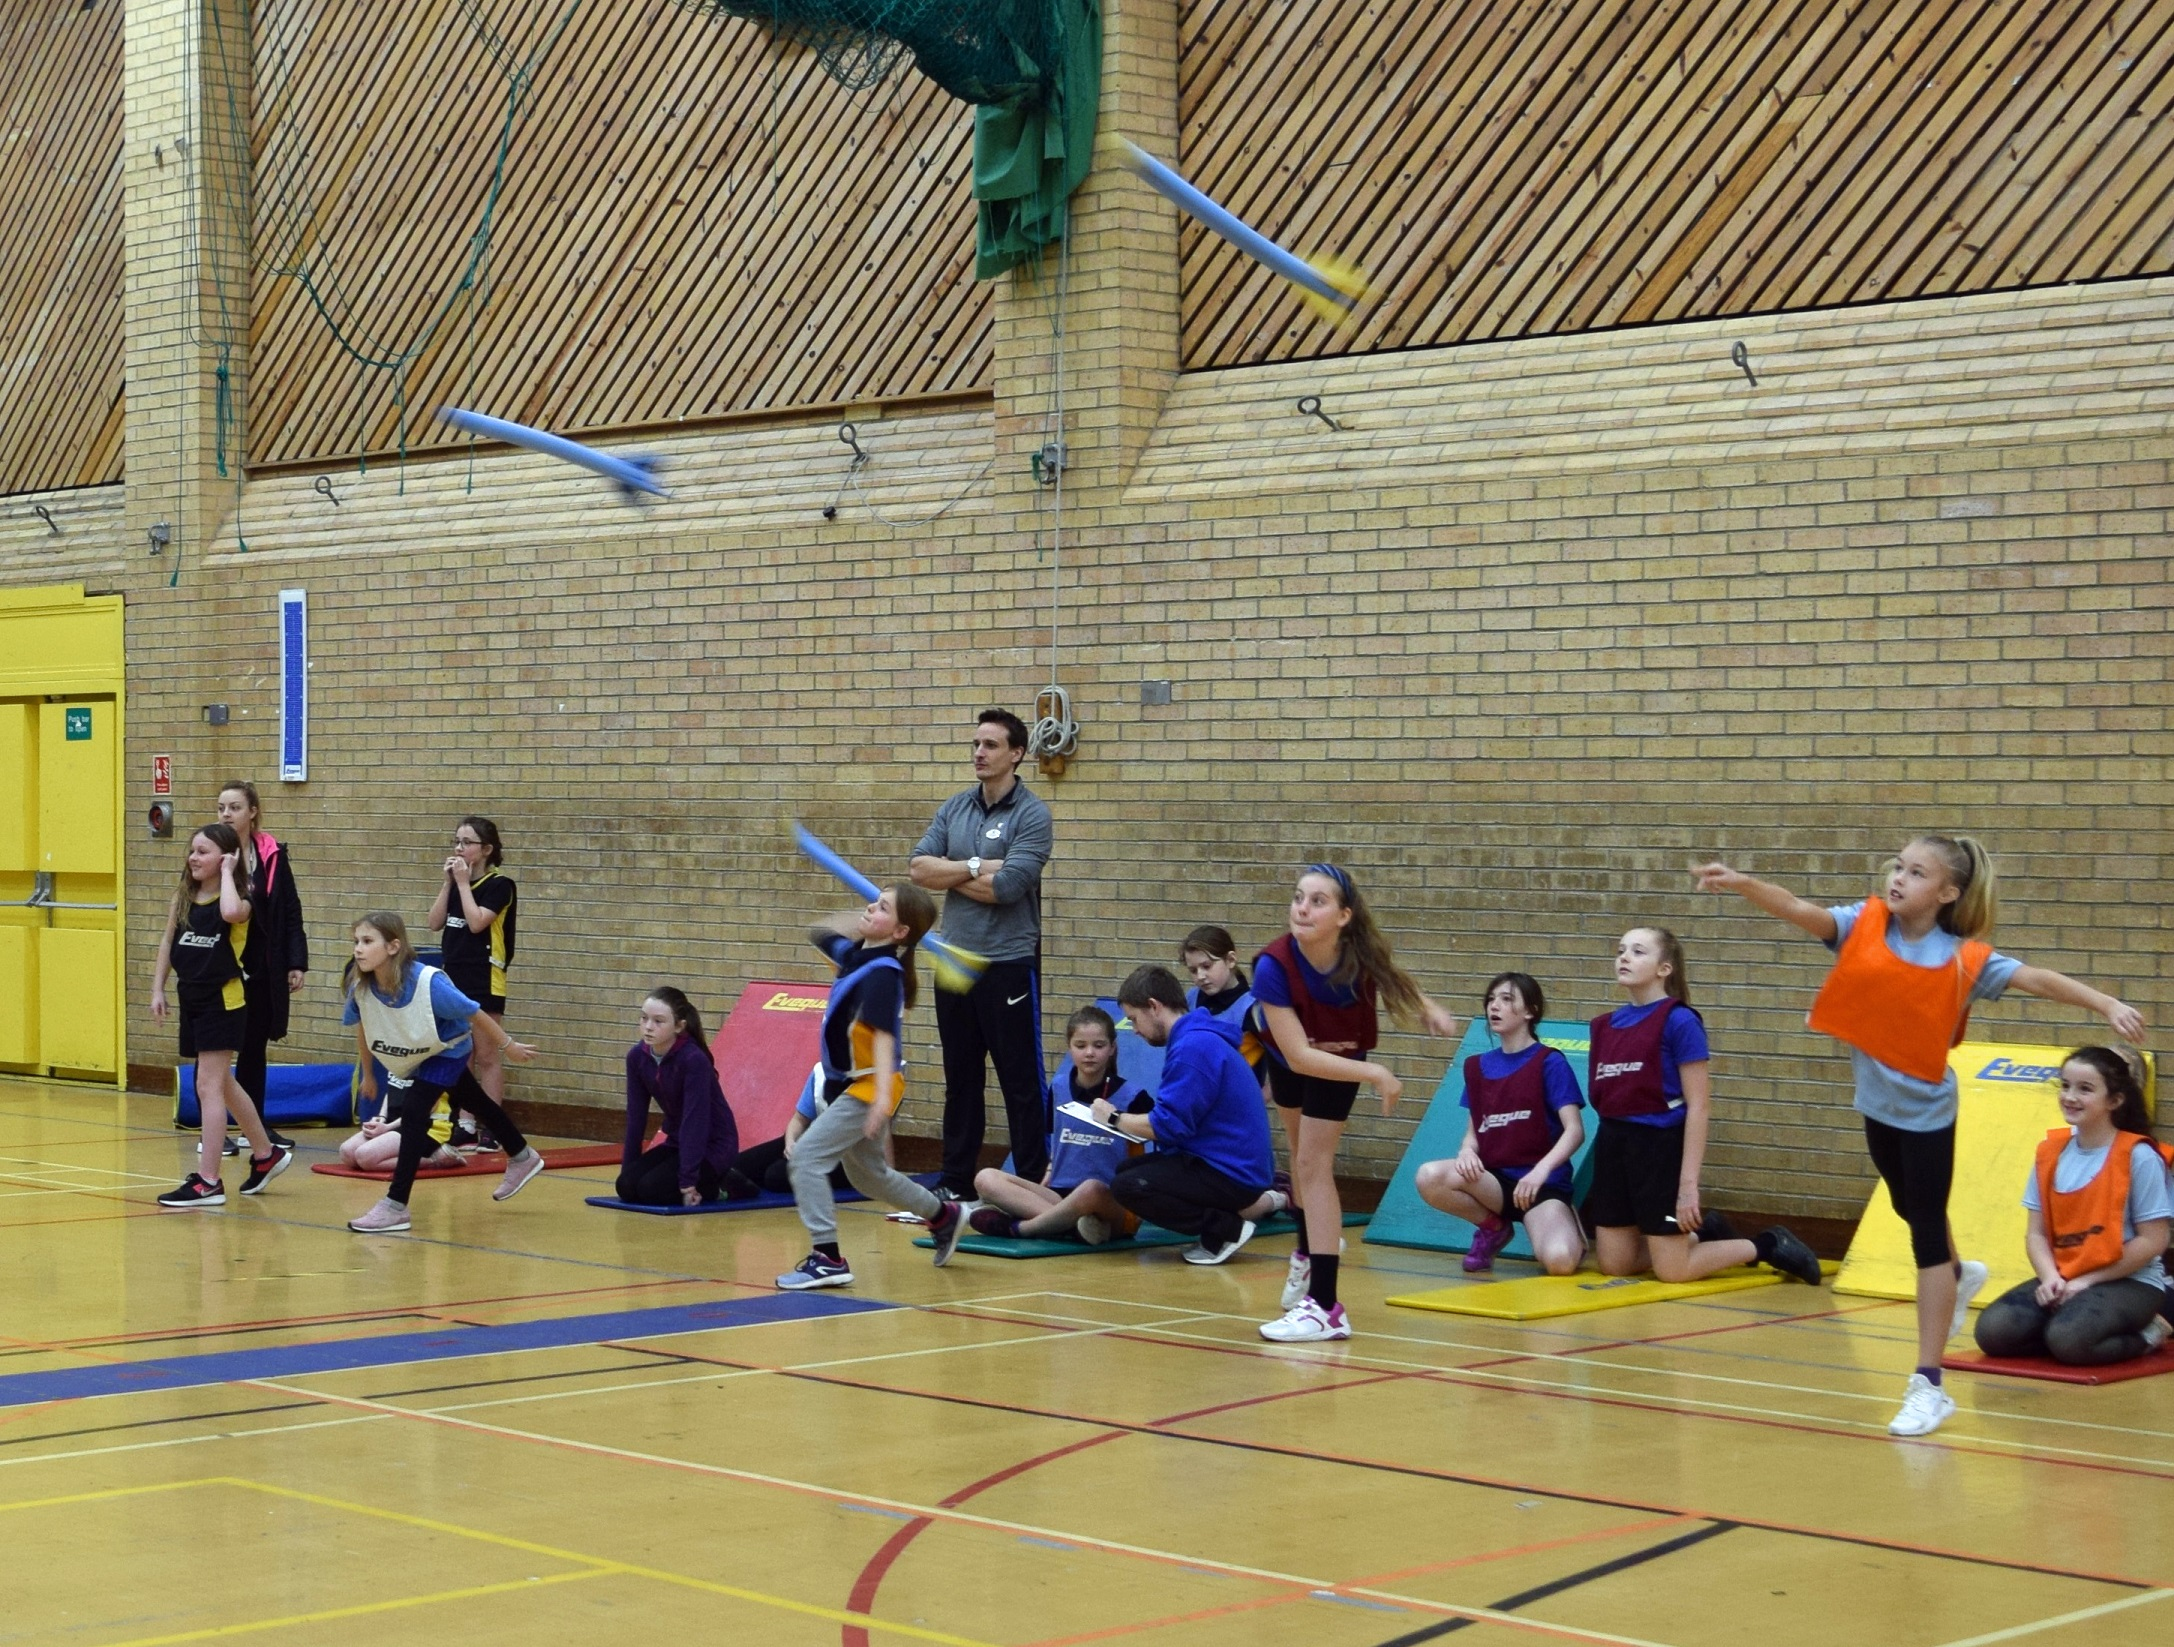 yr 7 girls javelin.jpg